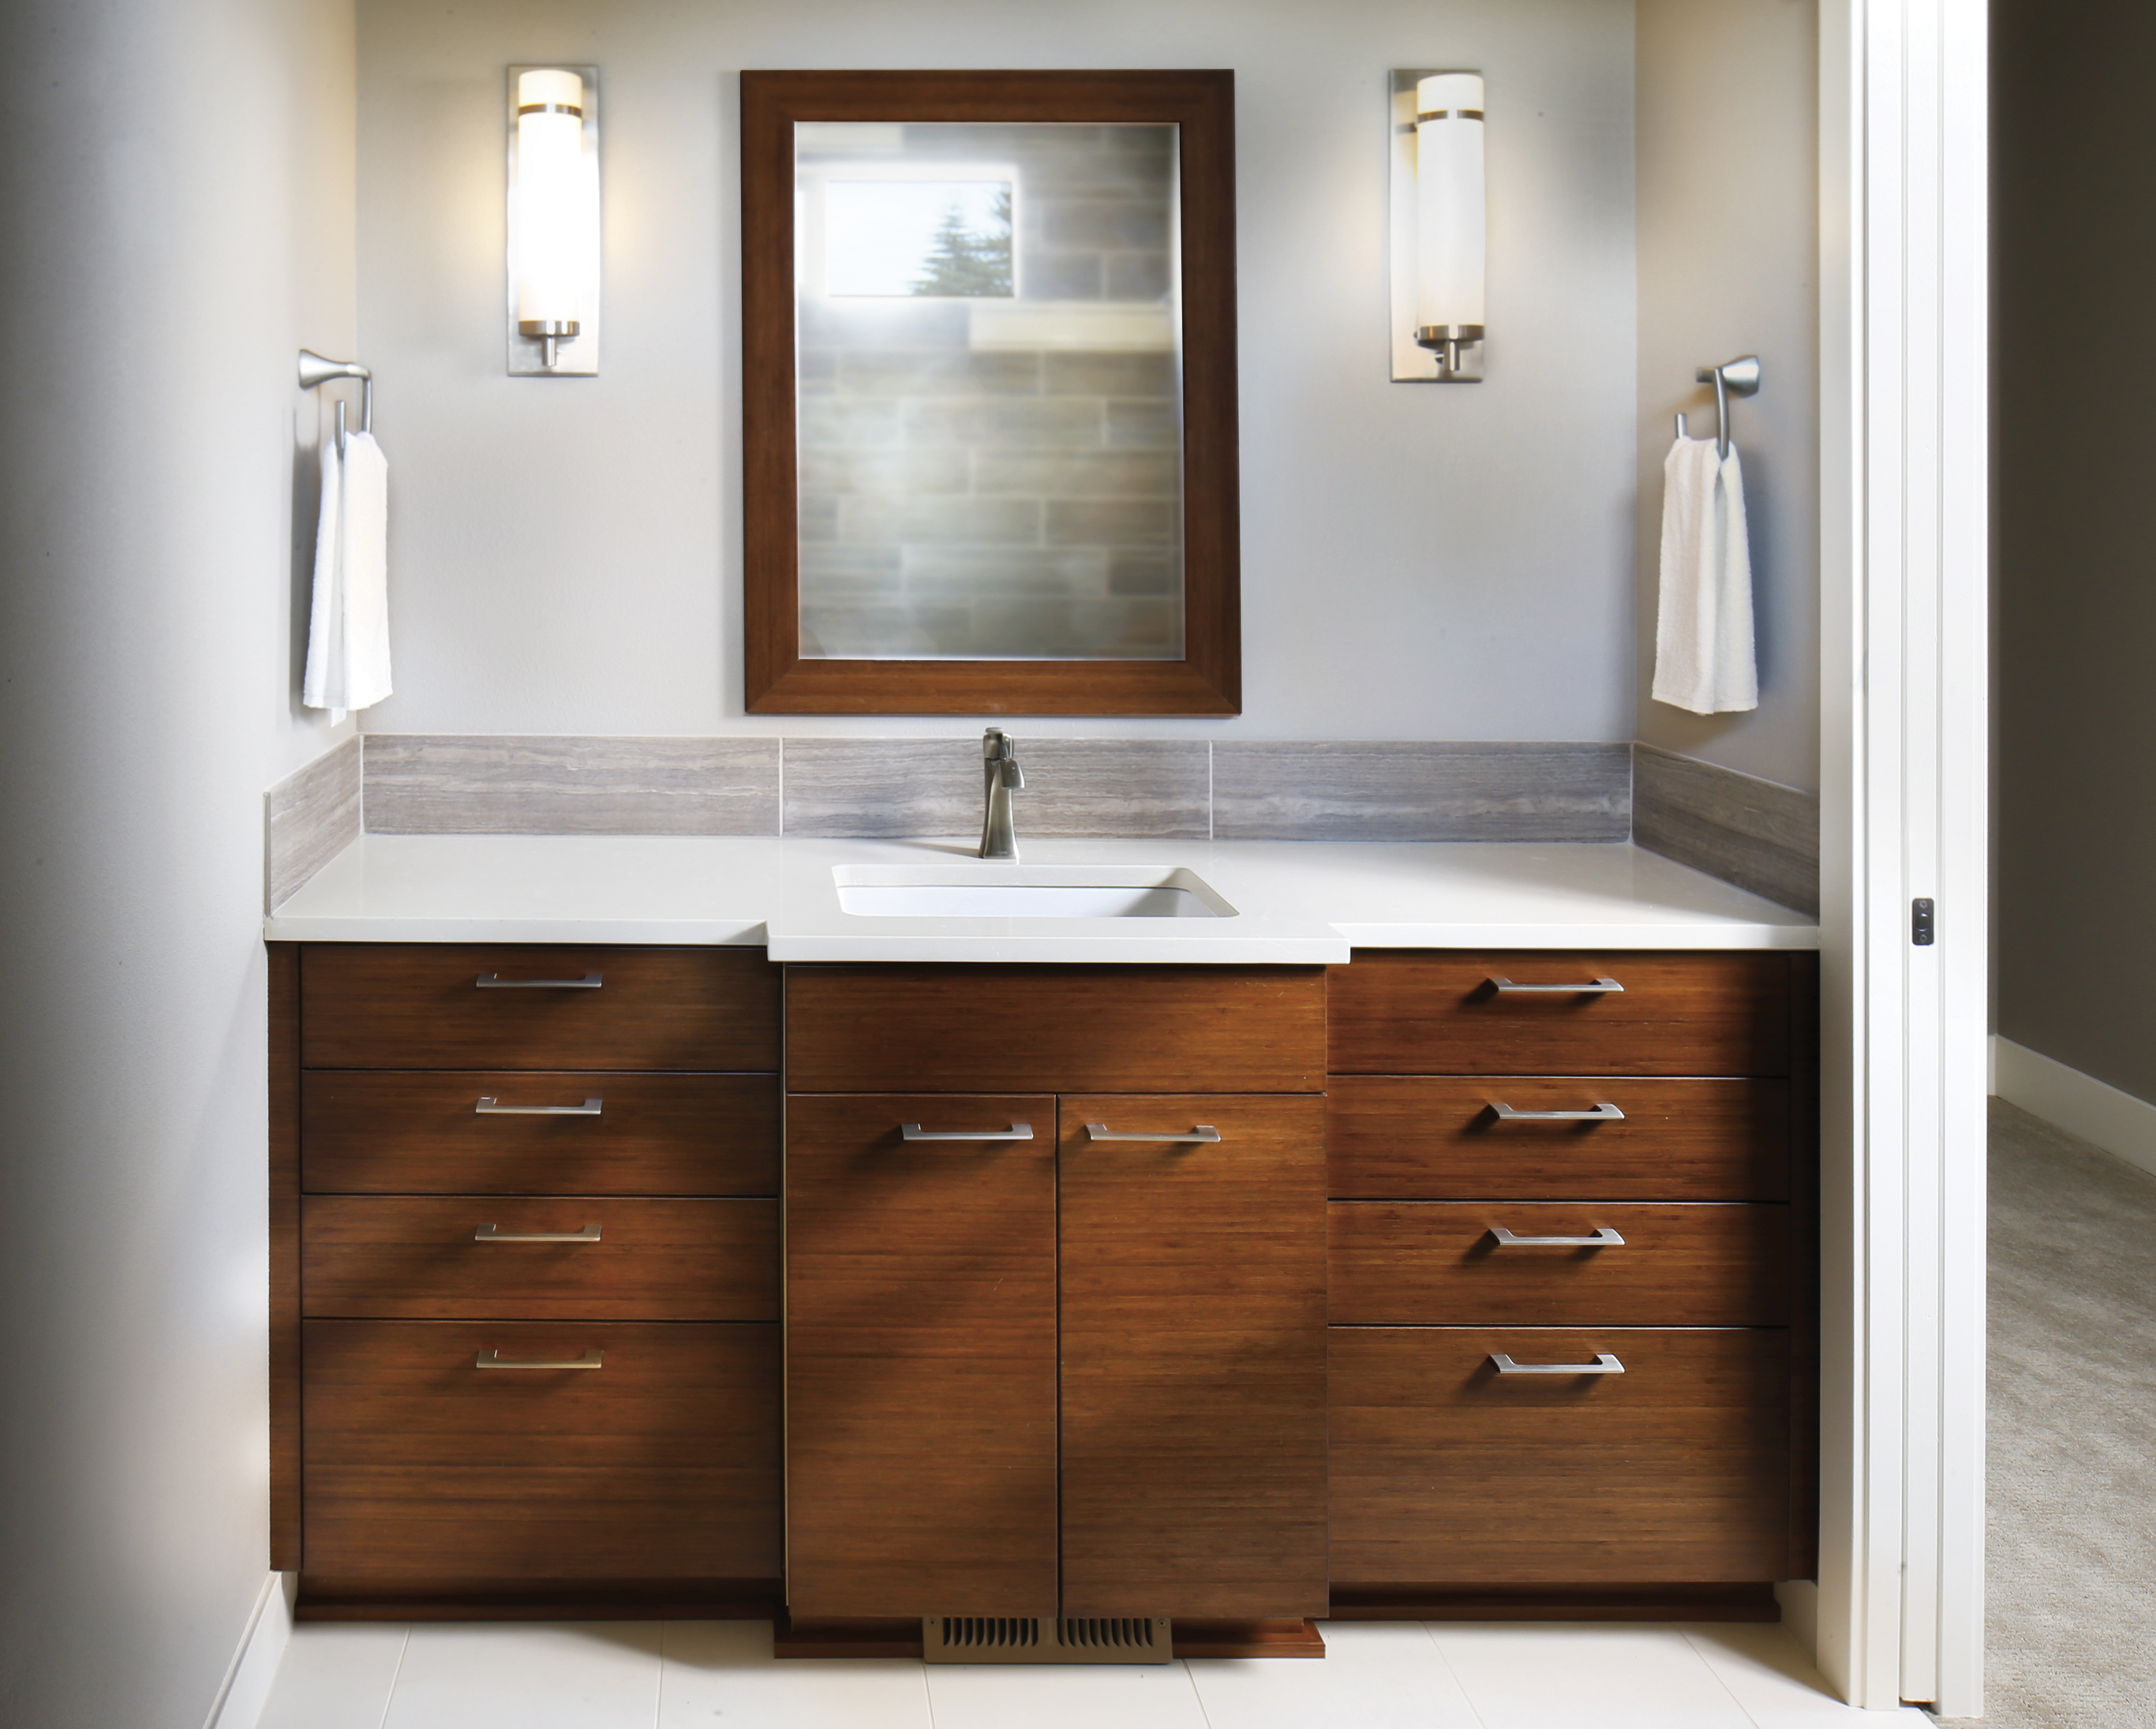 Mahogany Bathroom Cabinetry